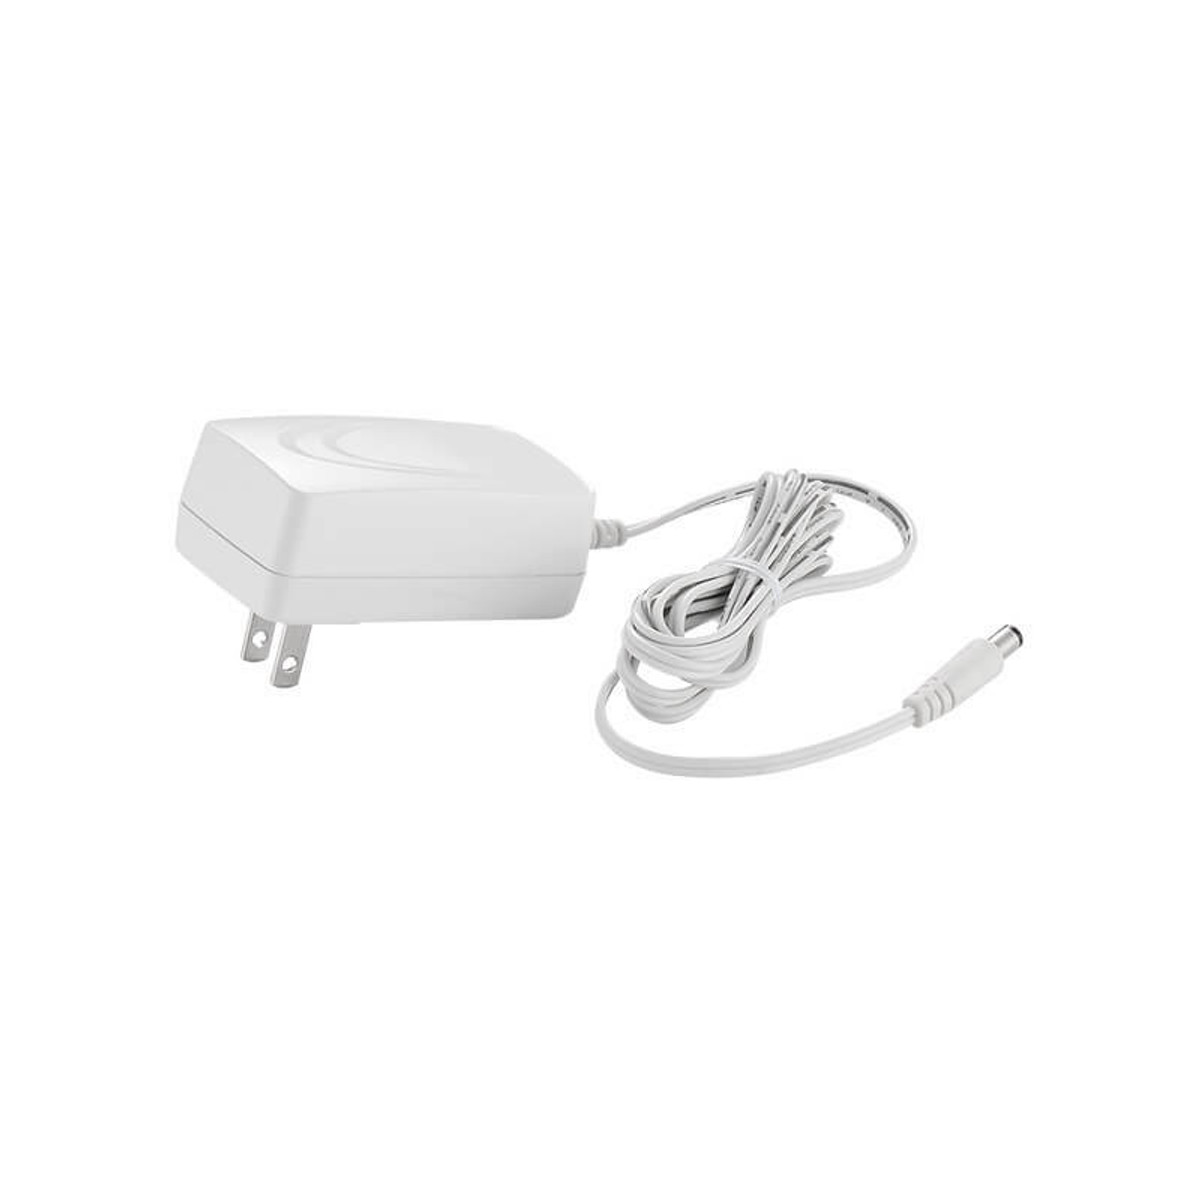 SureCall SureCall Flare 4G Easy Install Cell Phone Signal Booster